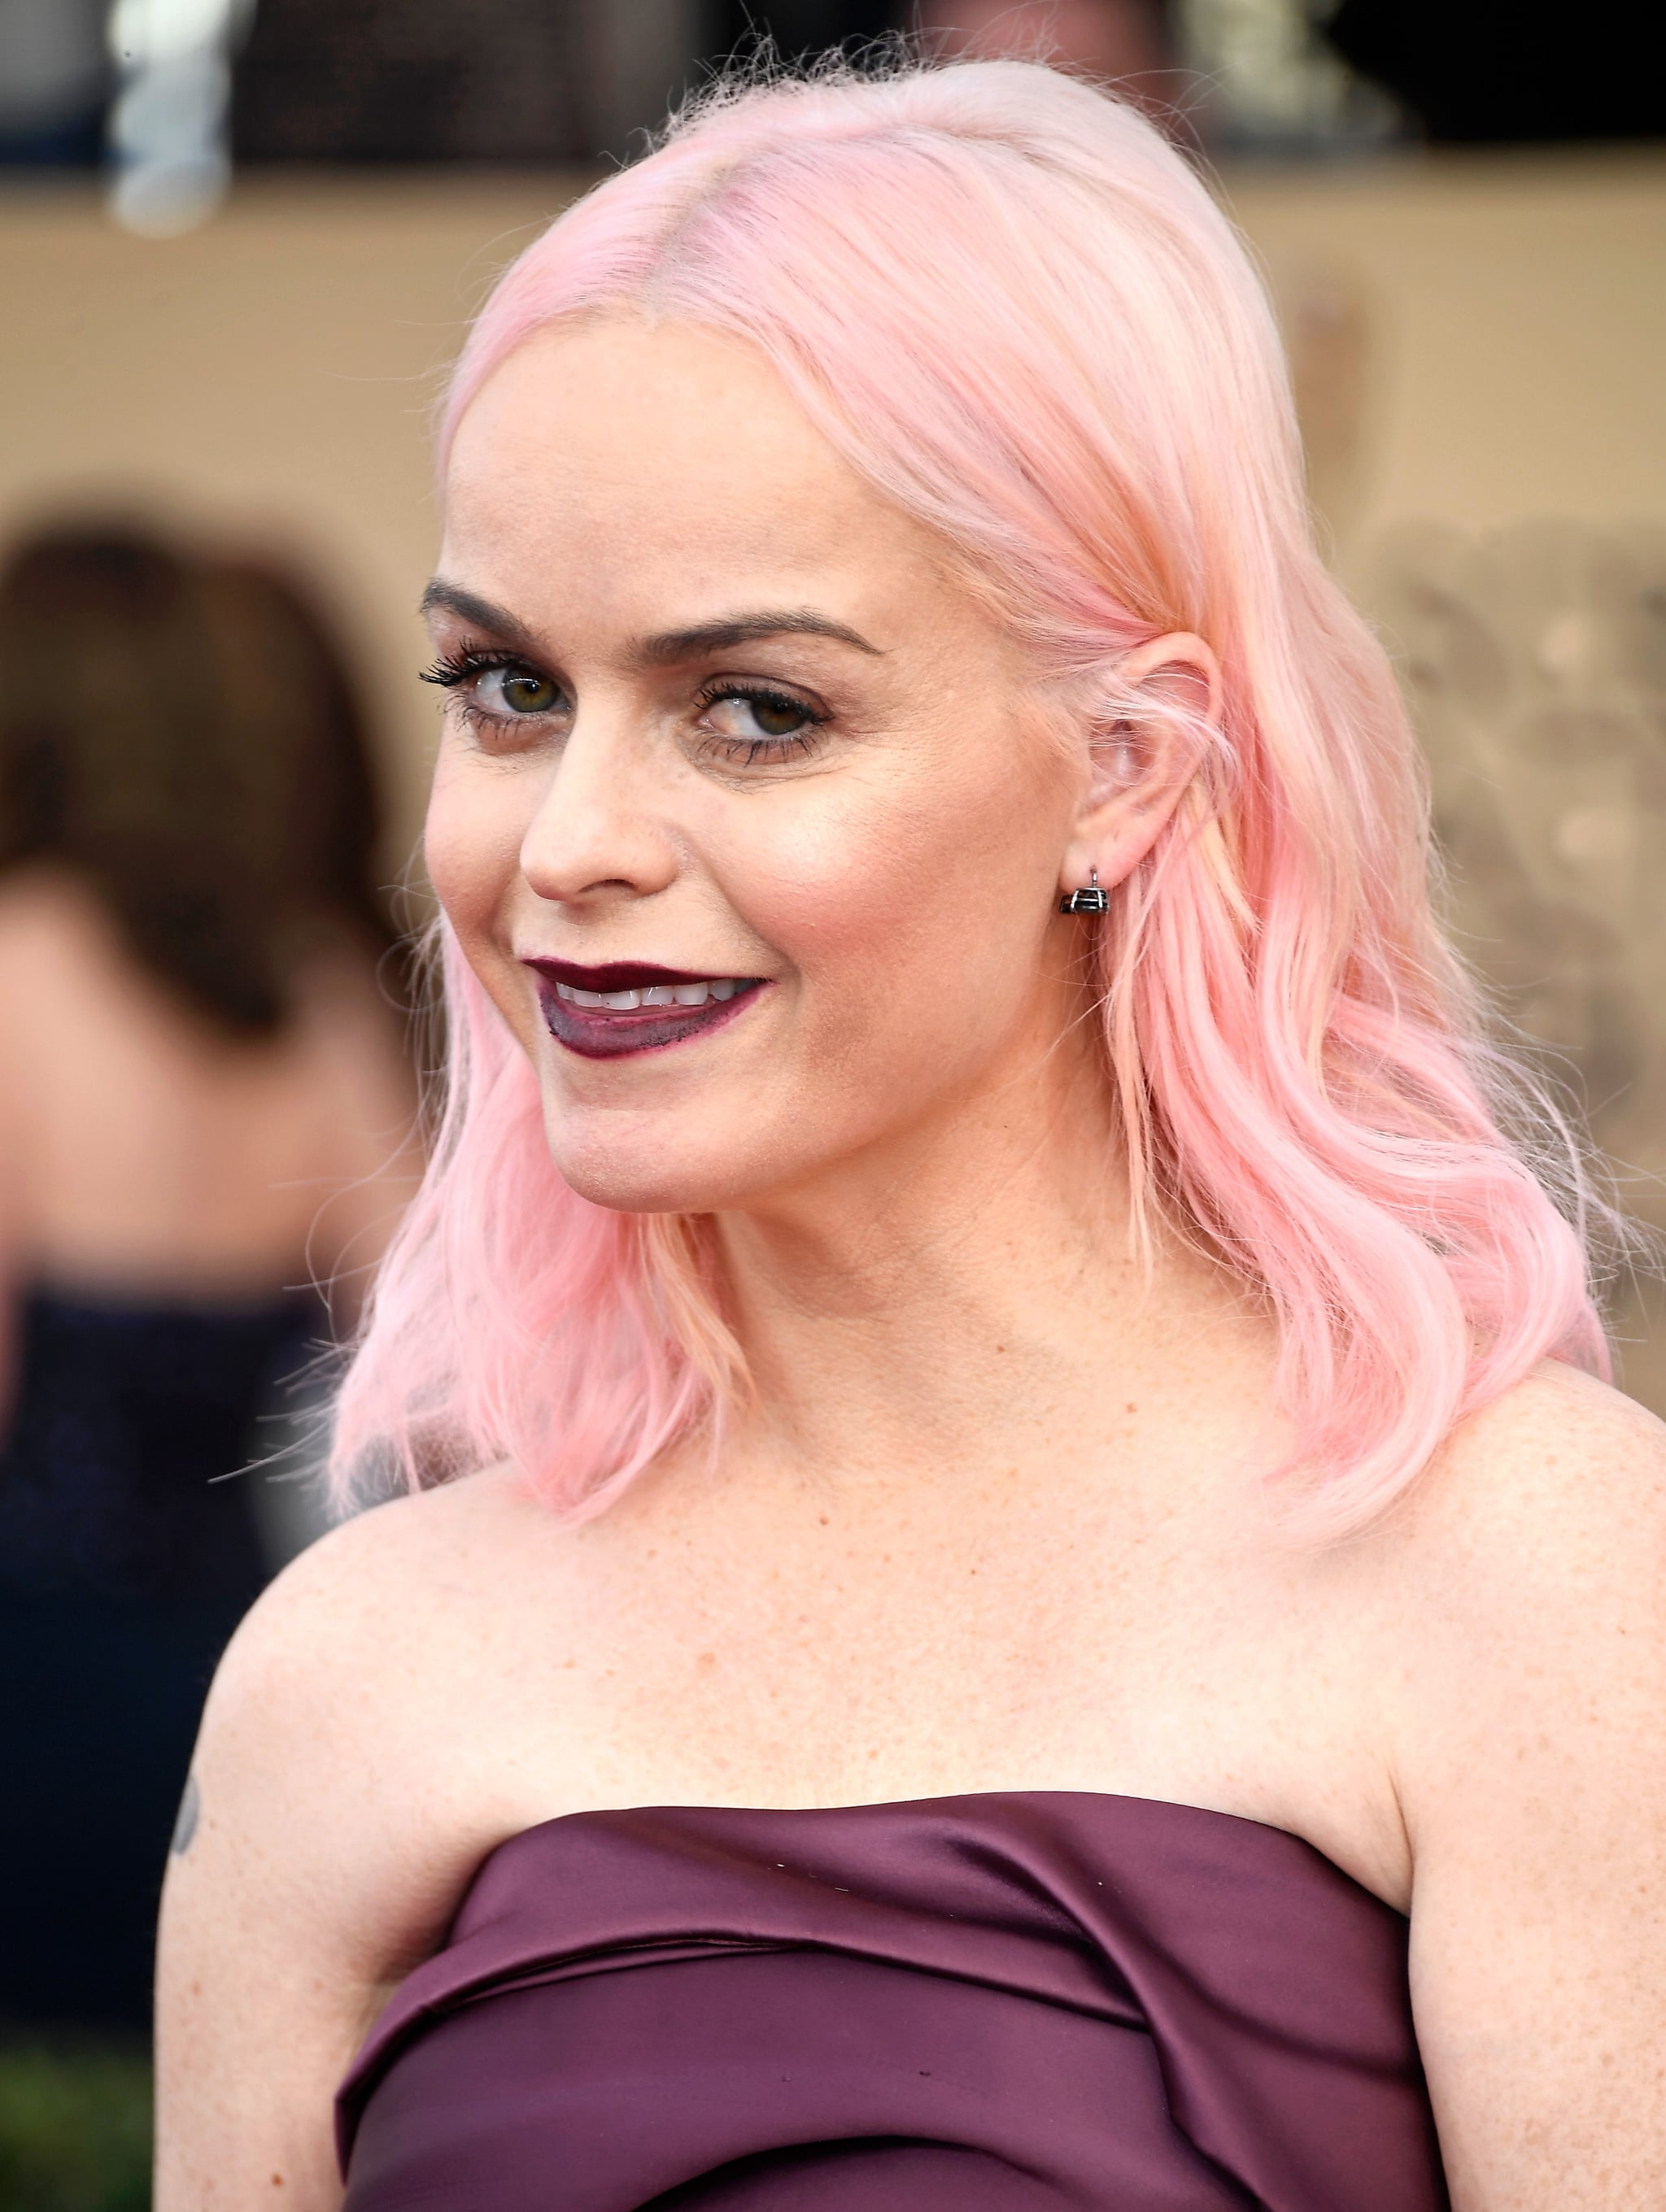 who is taryn manning